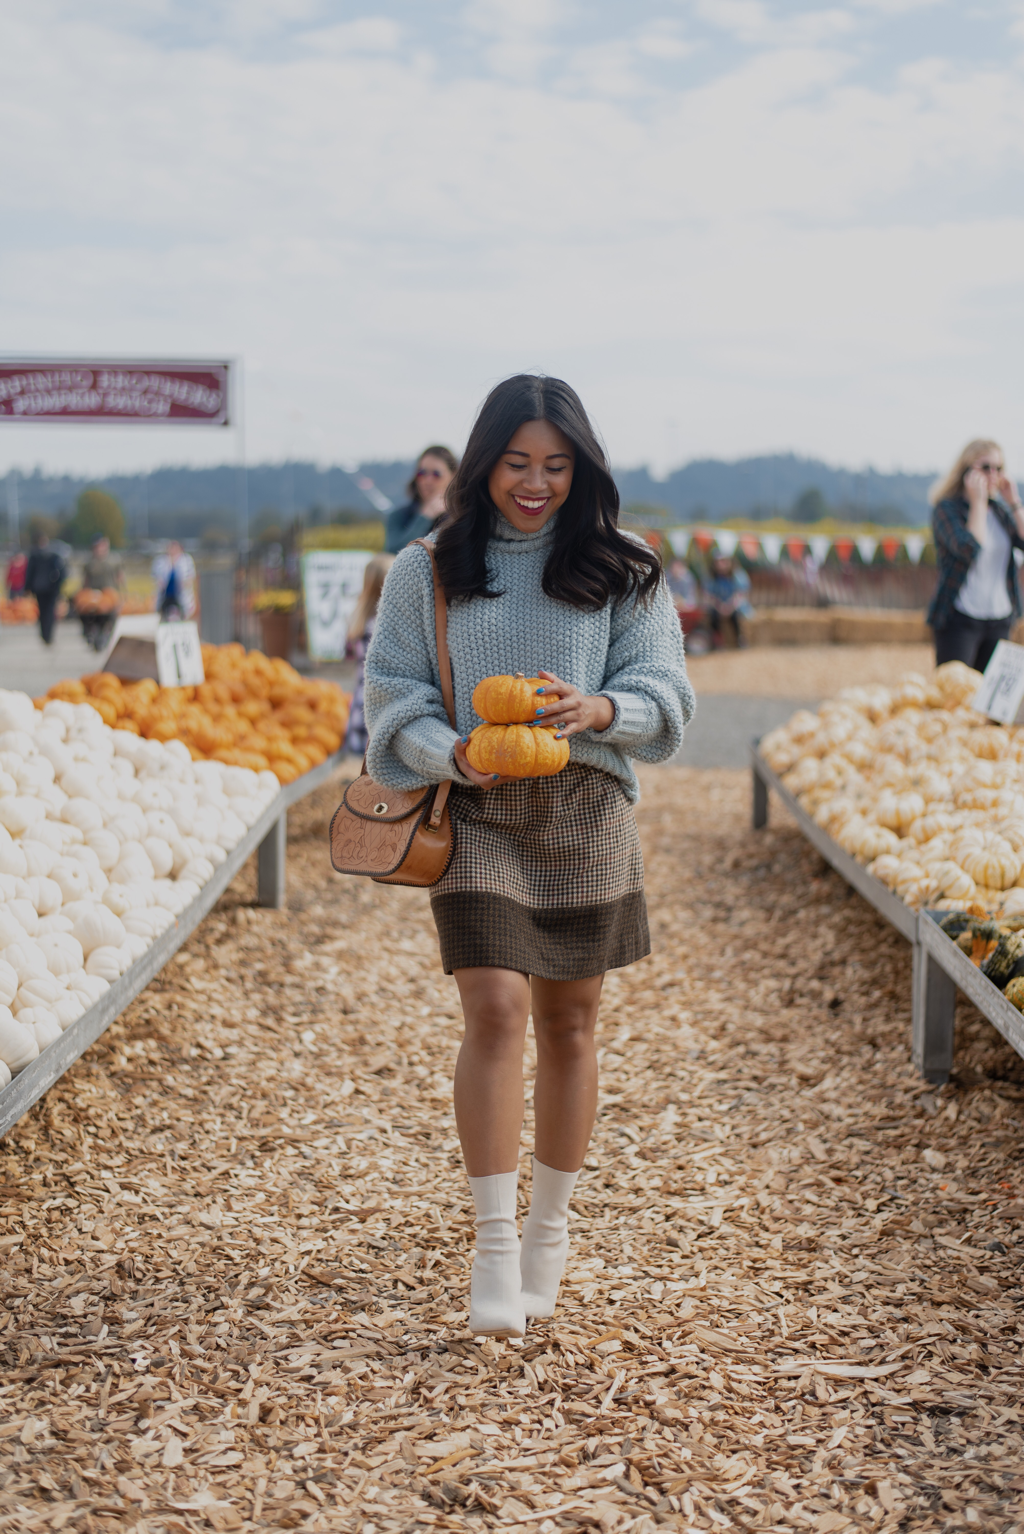 photo diary: pacific northwest pumpkin patch photoshoot - Karya Schanilec Photography #pumpkinpatchoutfitwomen